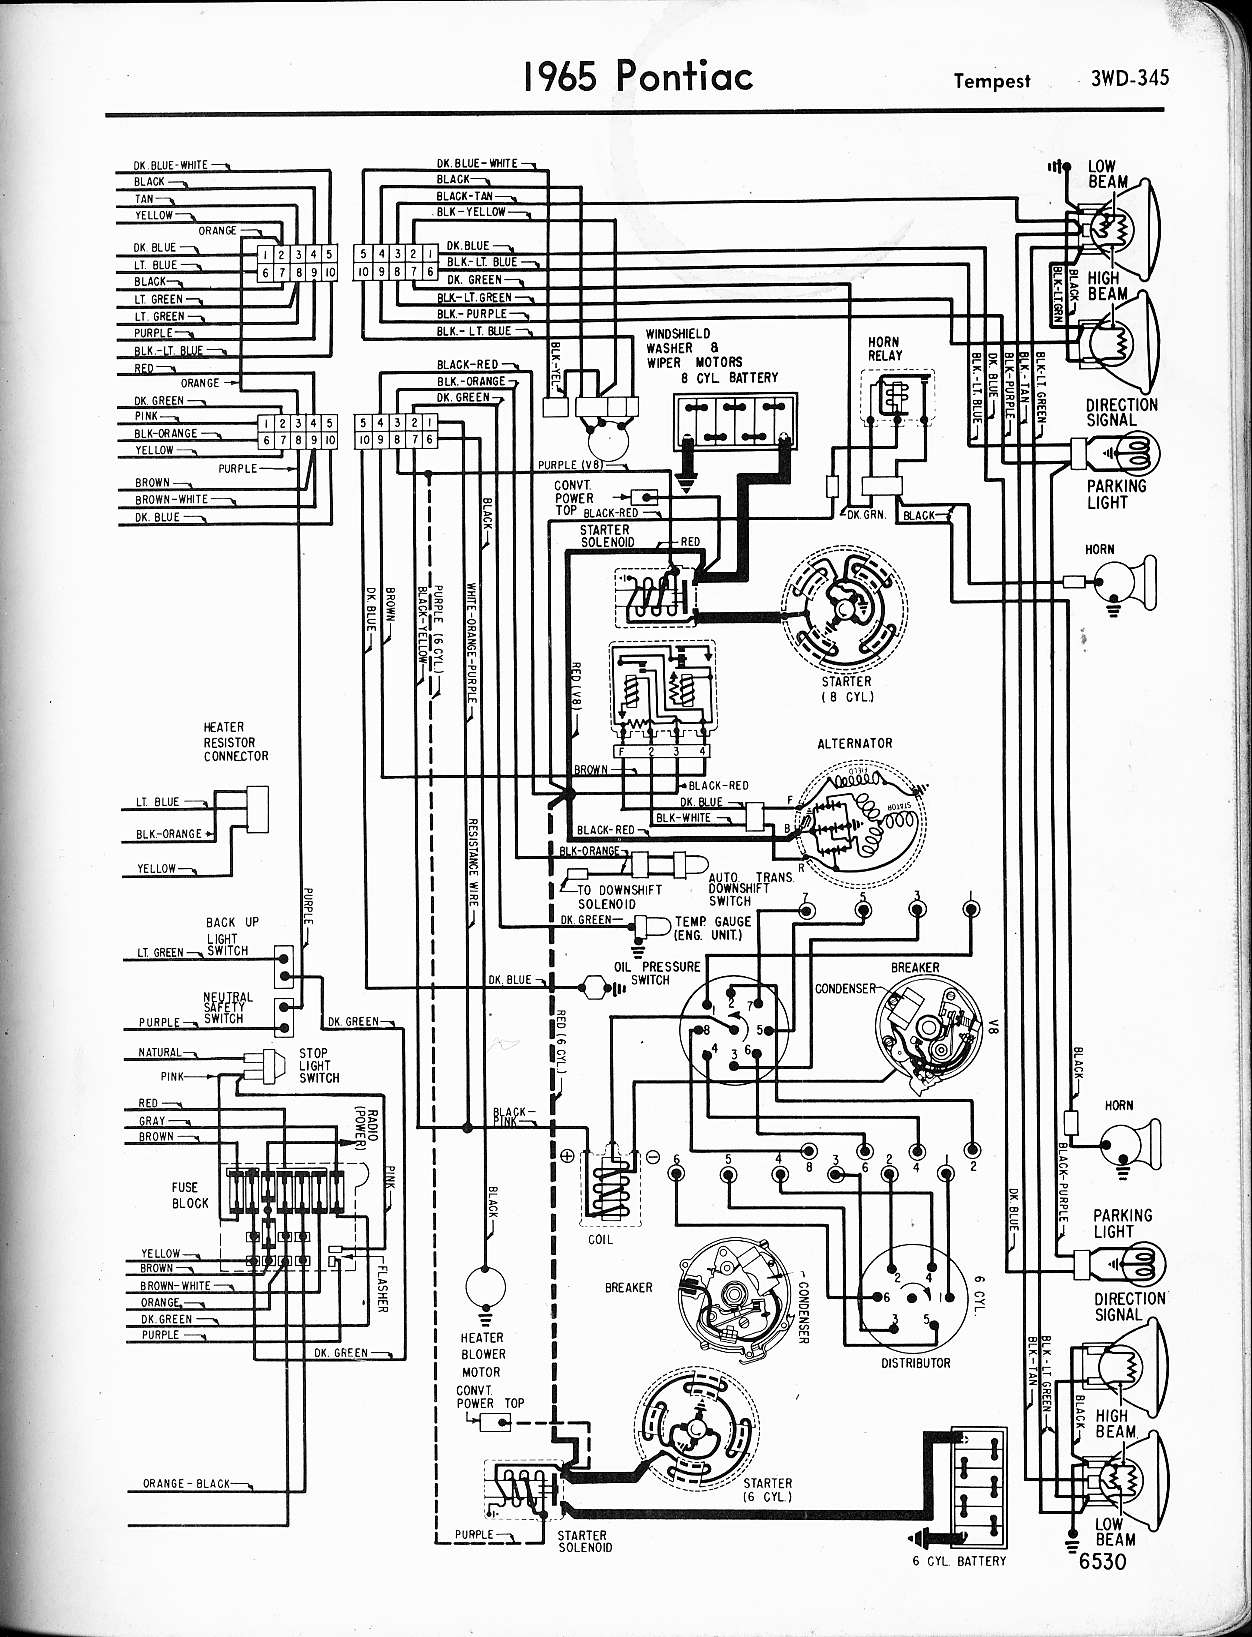 1965 pontiac gto rally gauge wiring diagram wiring diagram rh gregmadison co 1967 Galaxie 500 Wiring 1967 Galaxie 500 Wiring